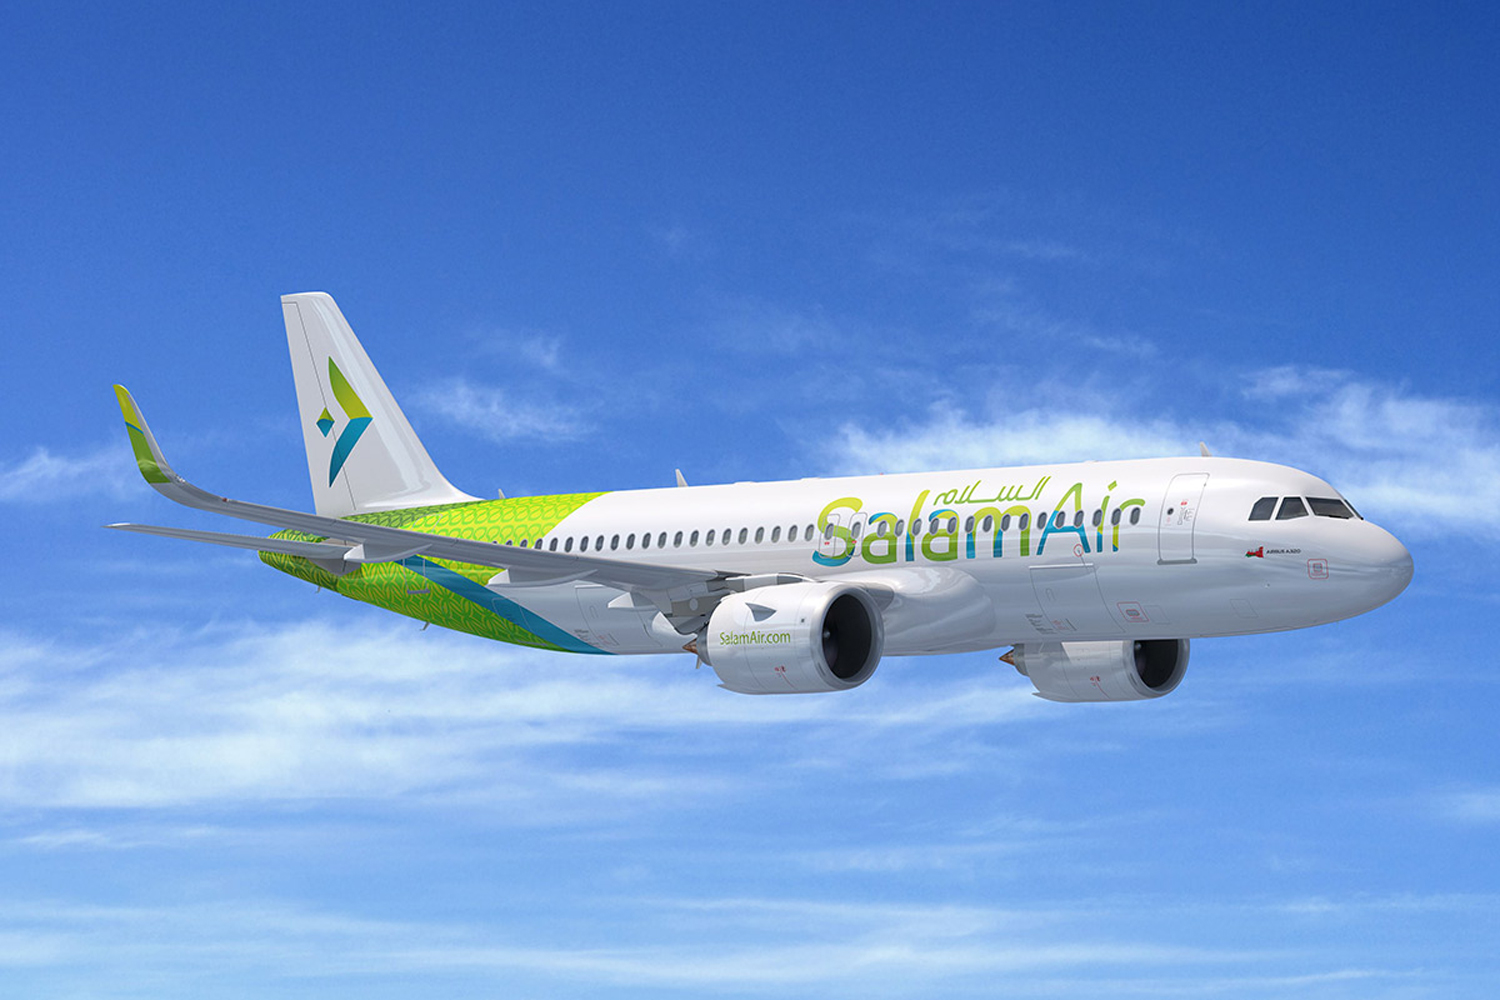 SalamAir launches free COVID-19 assistance cover